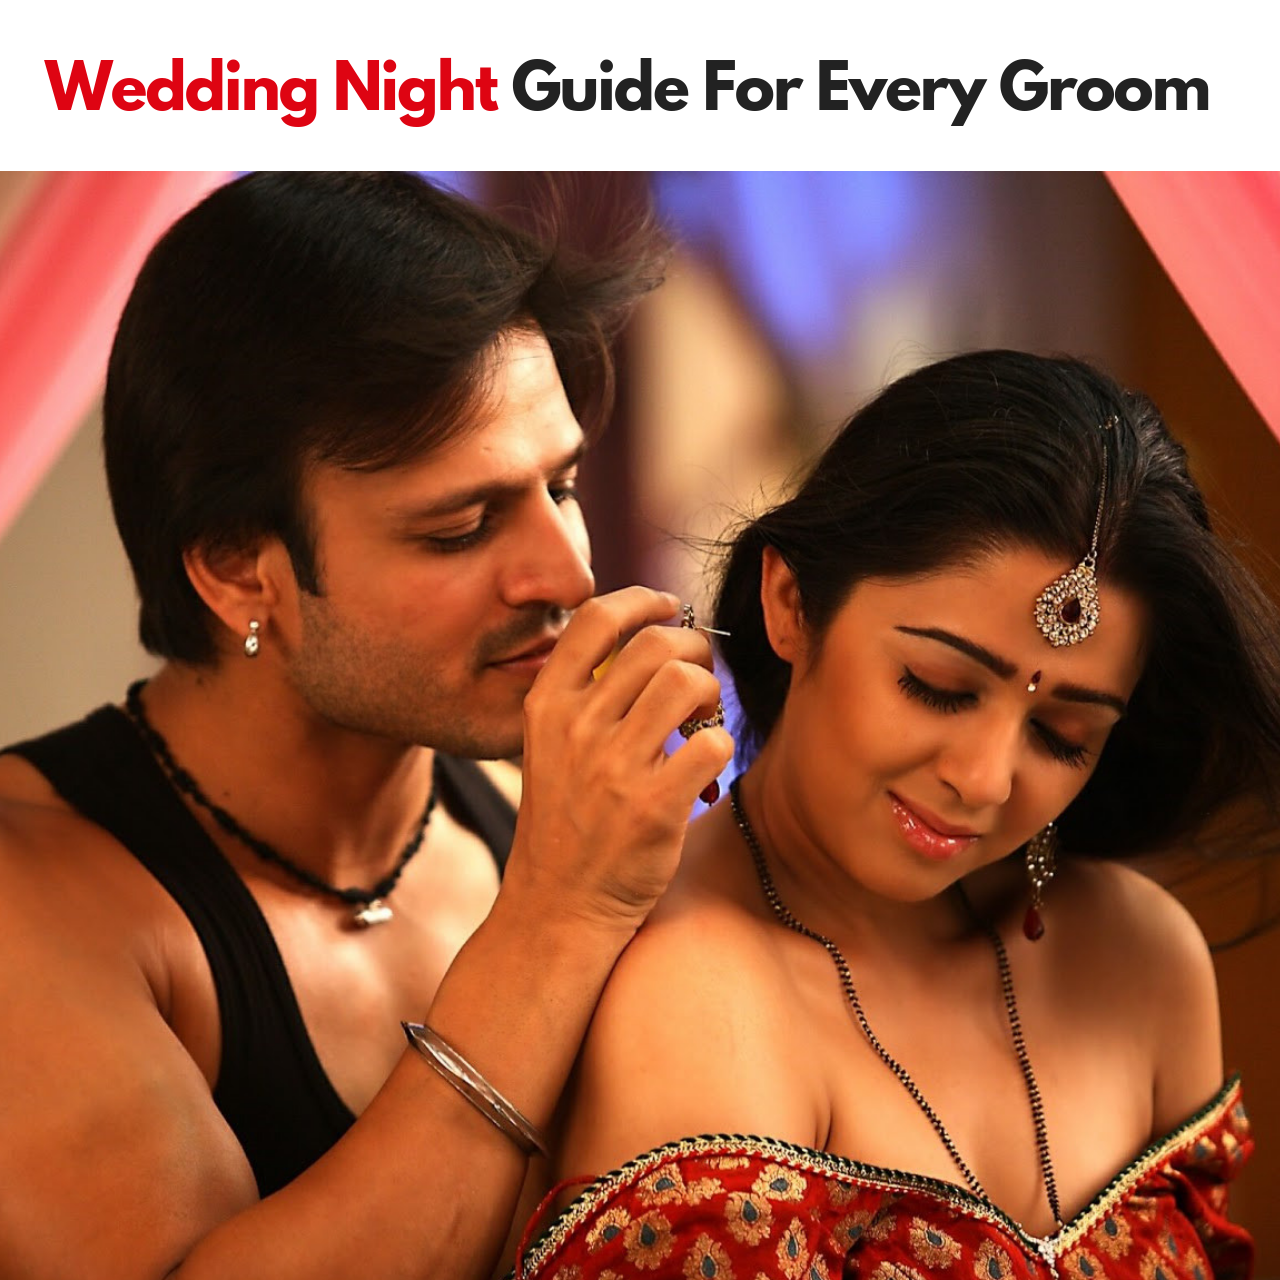 Wedding Night Guide For Every Groom Firstnight Wedding Weddingnight Groom Bride Bridenight Groom Wedding Night Wedding Groom